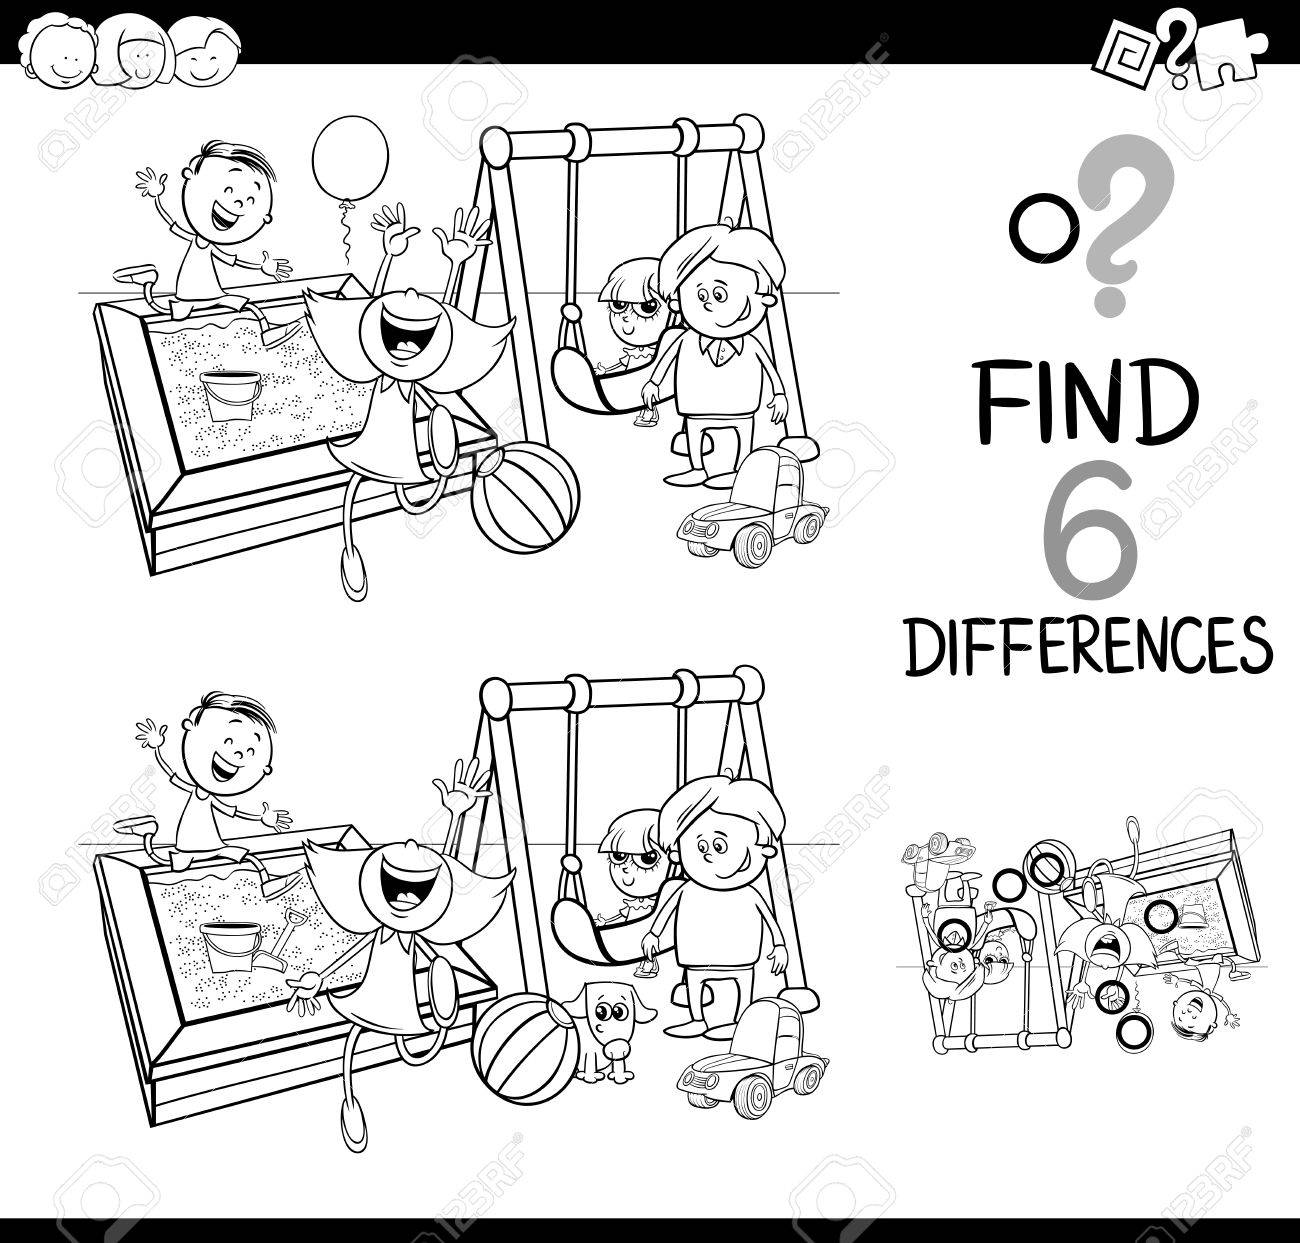 Black and white cartoon illustration of finding the difference educational activity for children with kids on